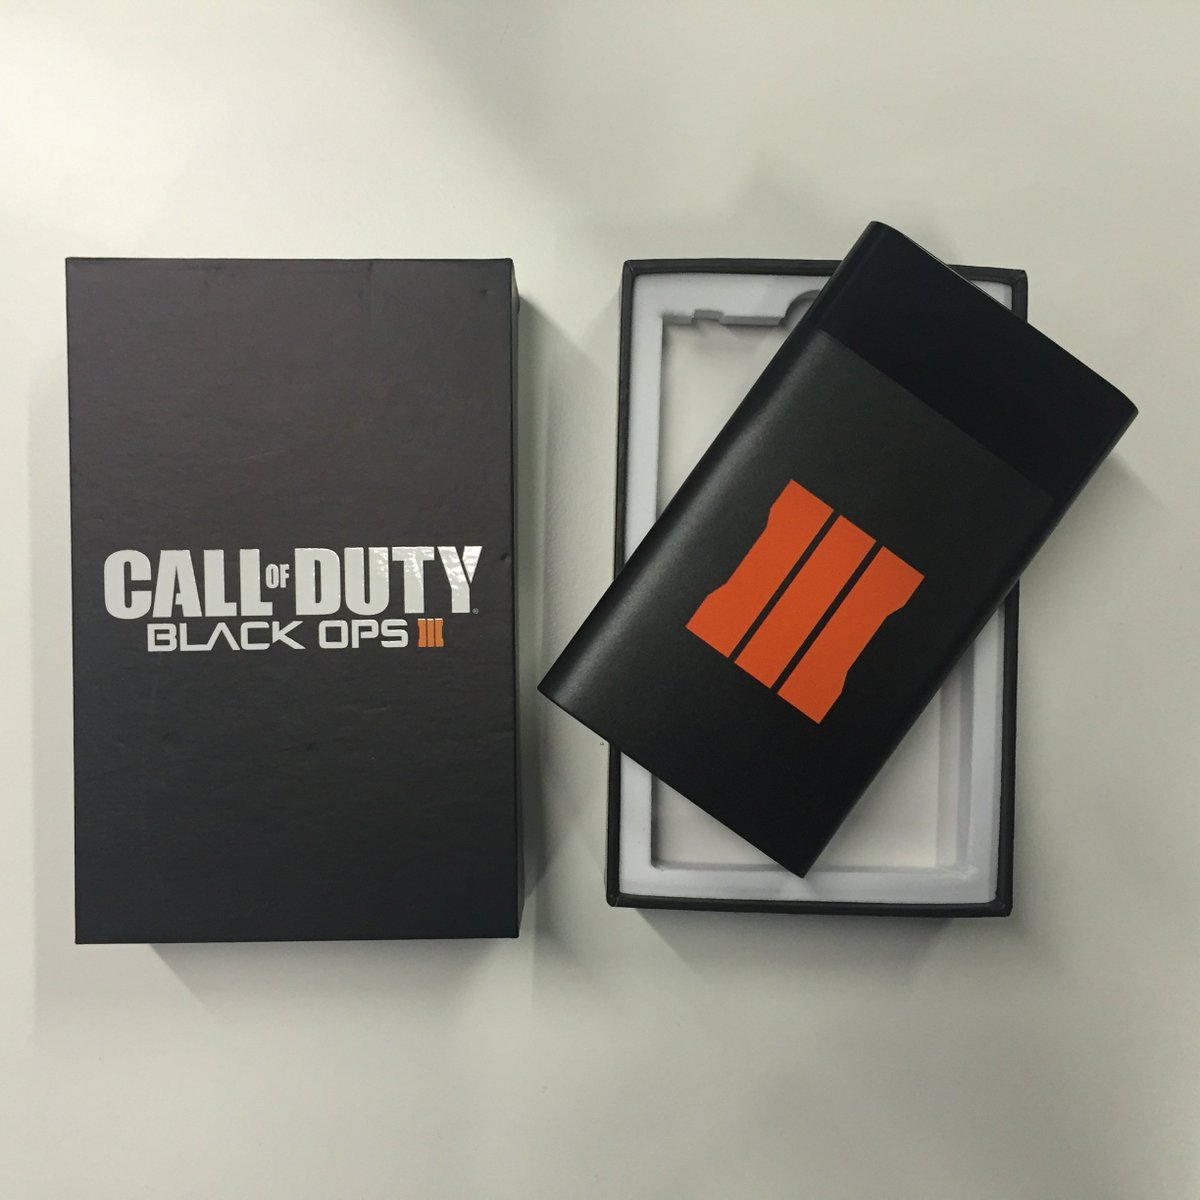 [COUNTDOWN] UNDER 2 DAYS TO GO! RT + FOLLOW for a chance to win a LE @CallofDuty #BlackOps3 Phone Charger (24 hours) https://t.co/bKHJpImc7h